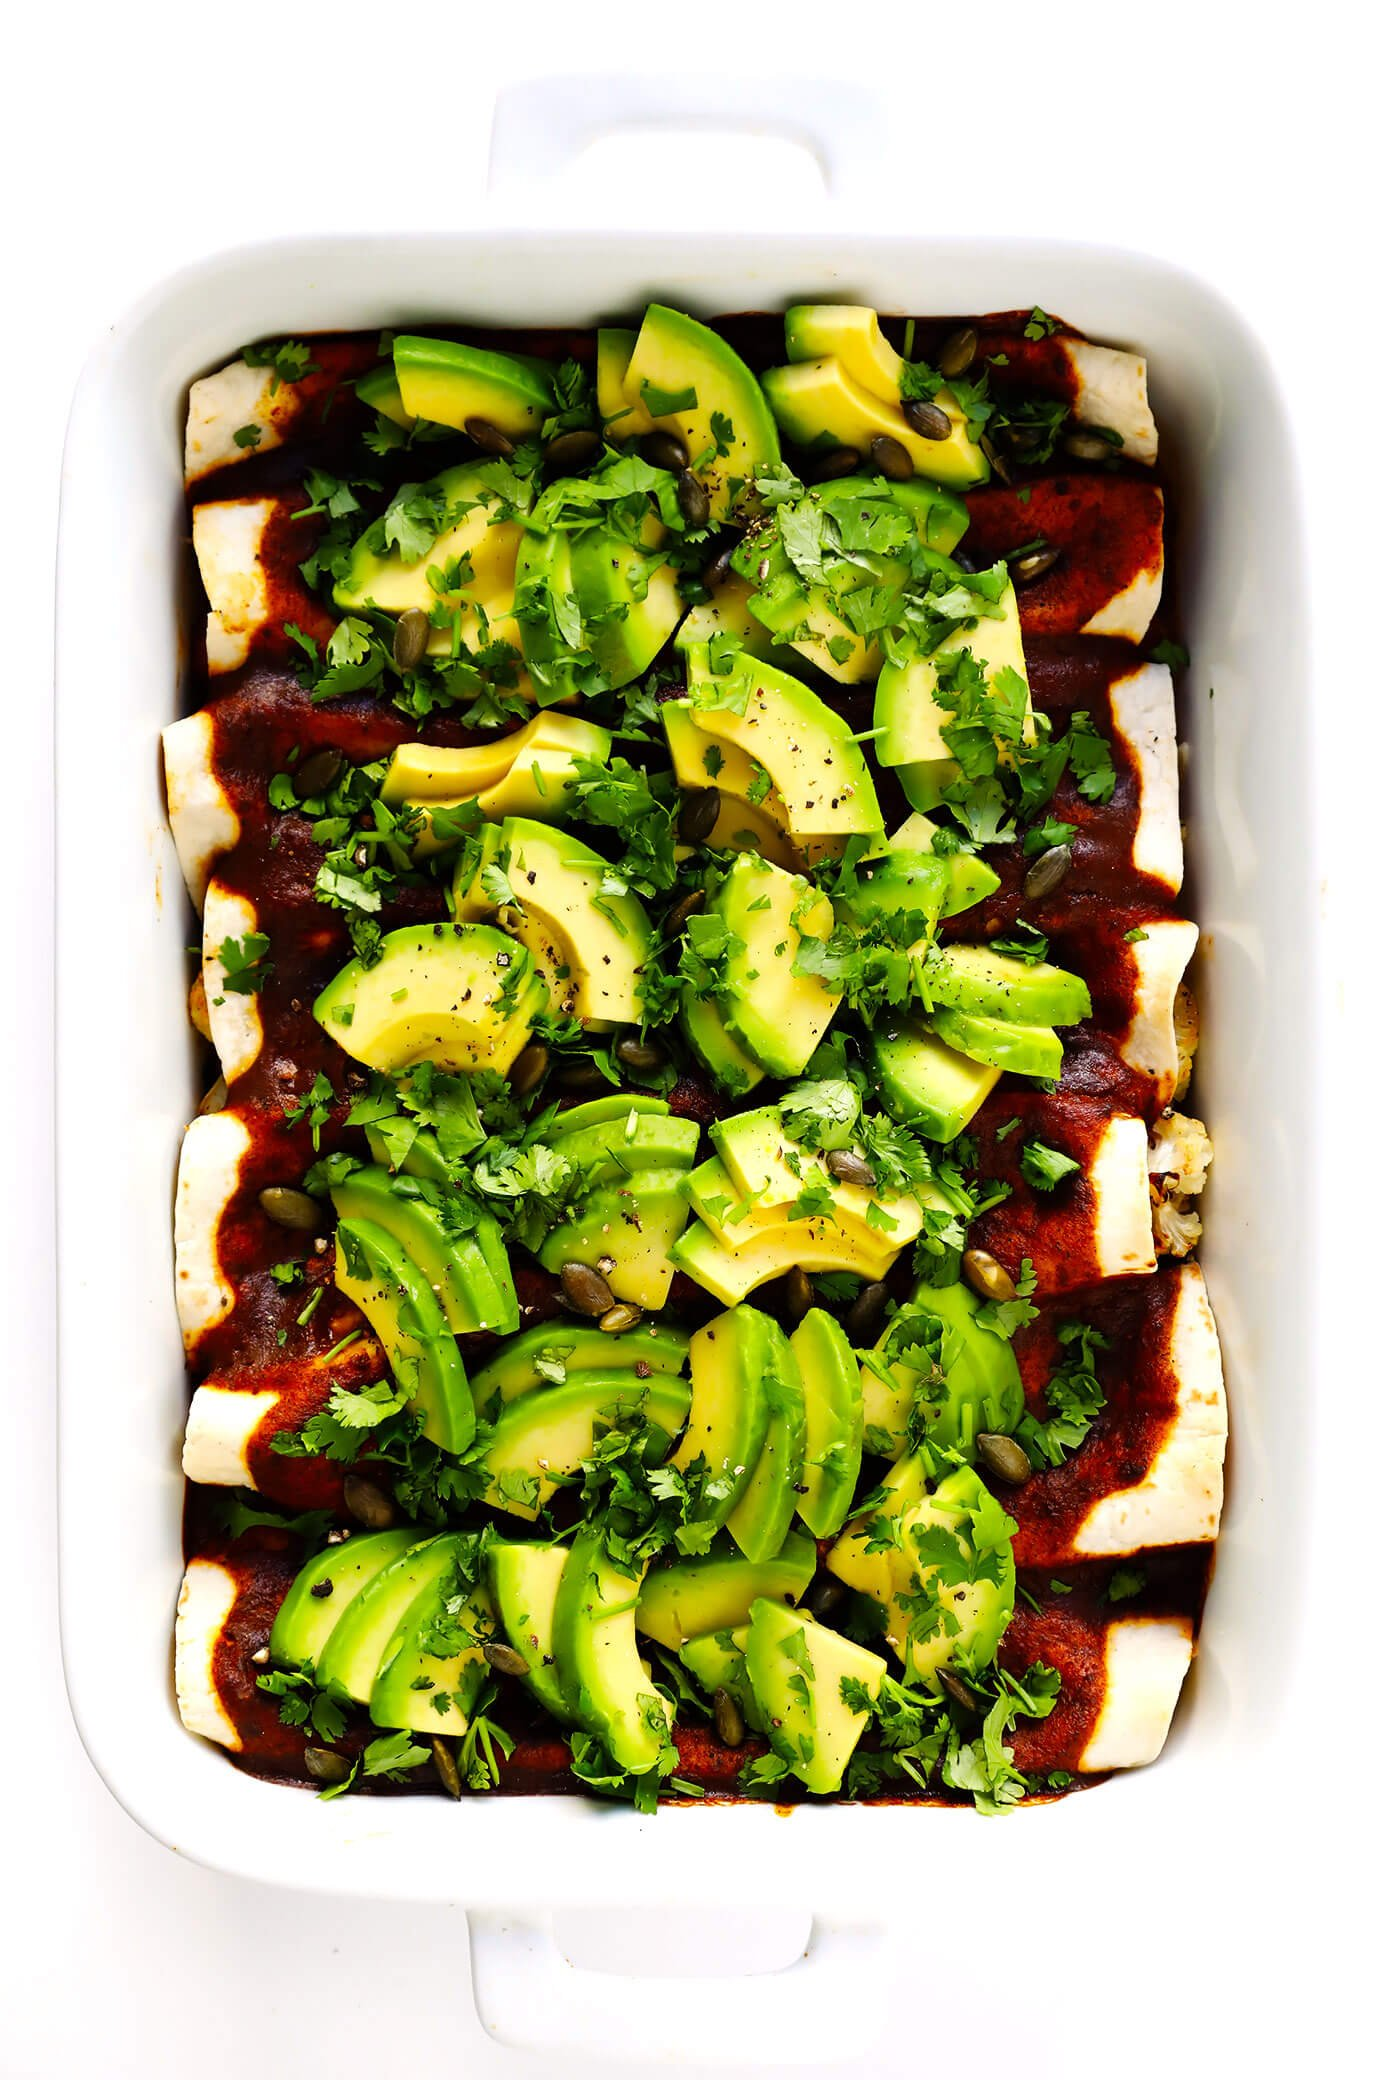 Roasted Cauliflower Enchiladas Recipe with Avocado and Cilantro